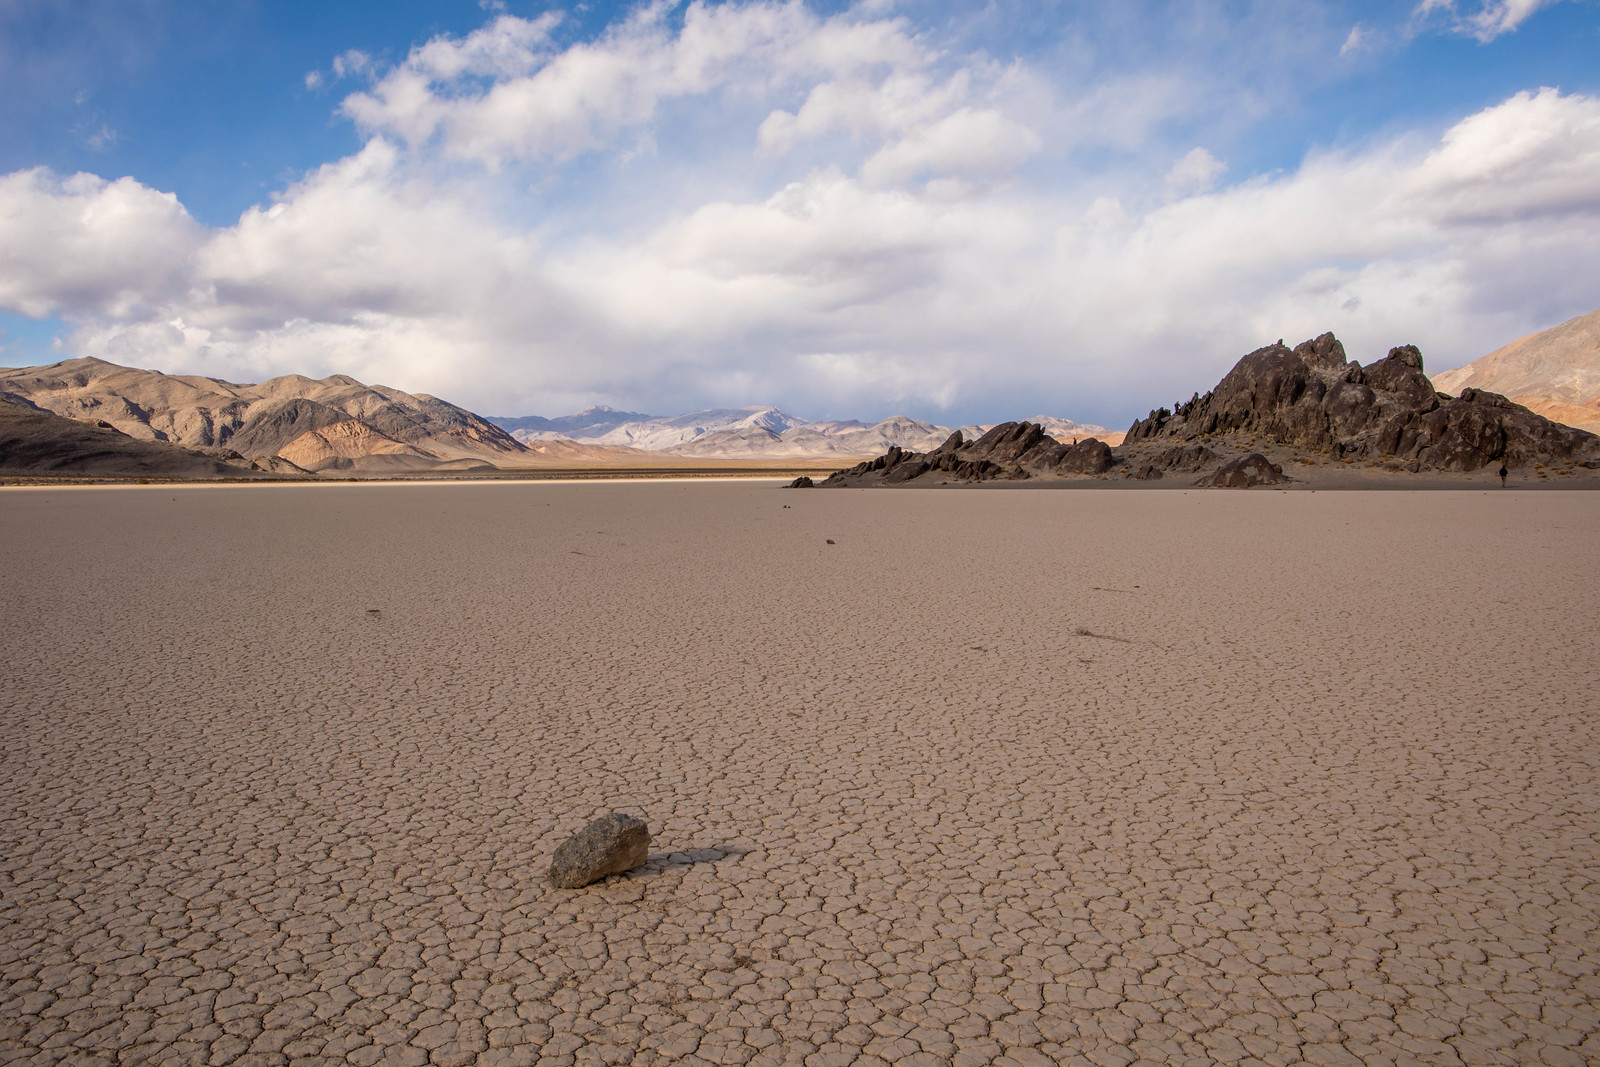 02.16. Death Valley National Park